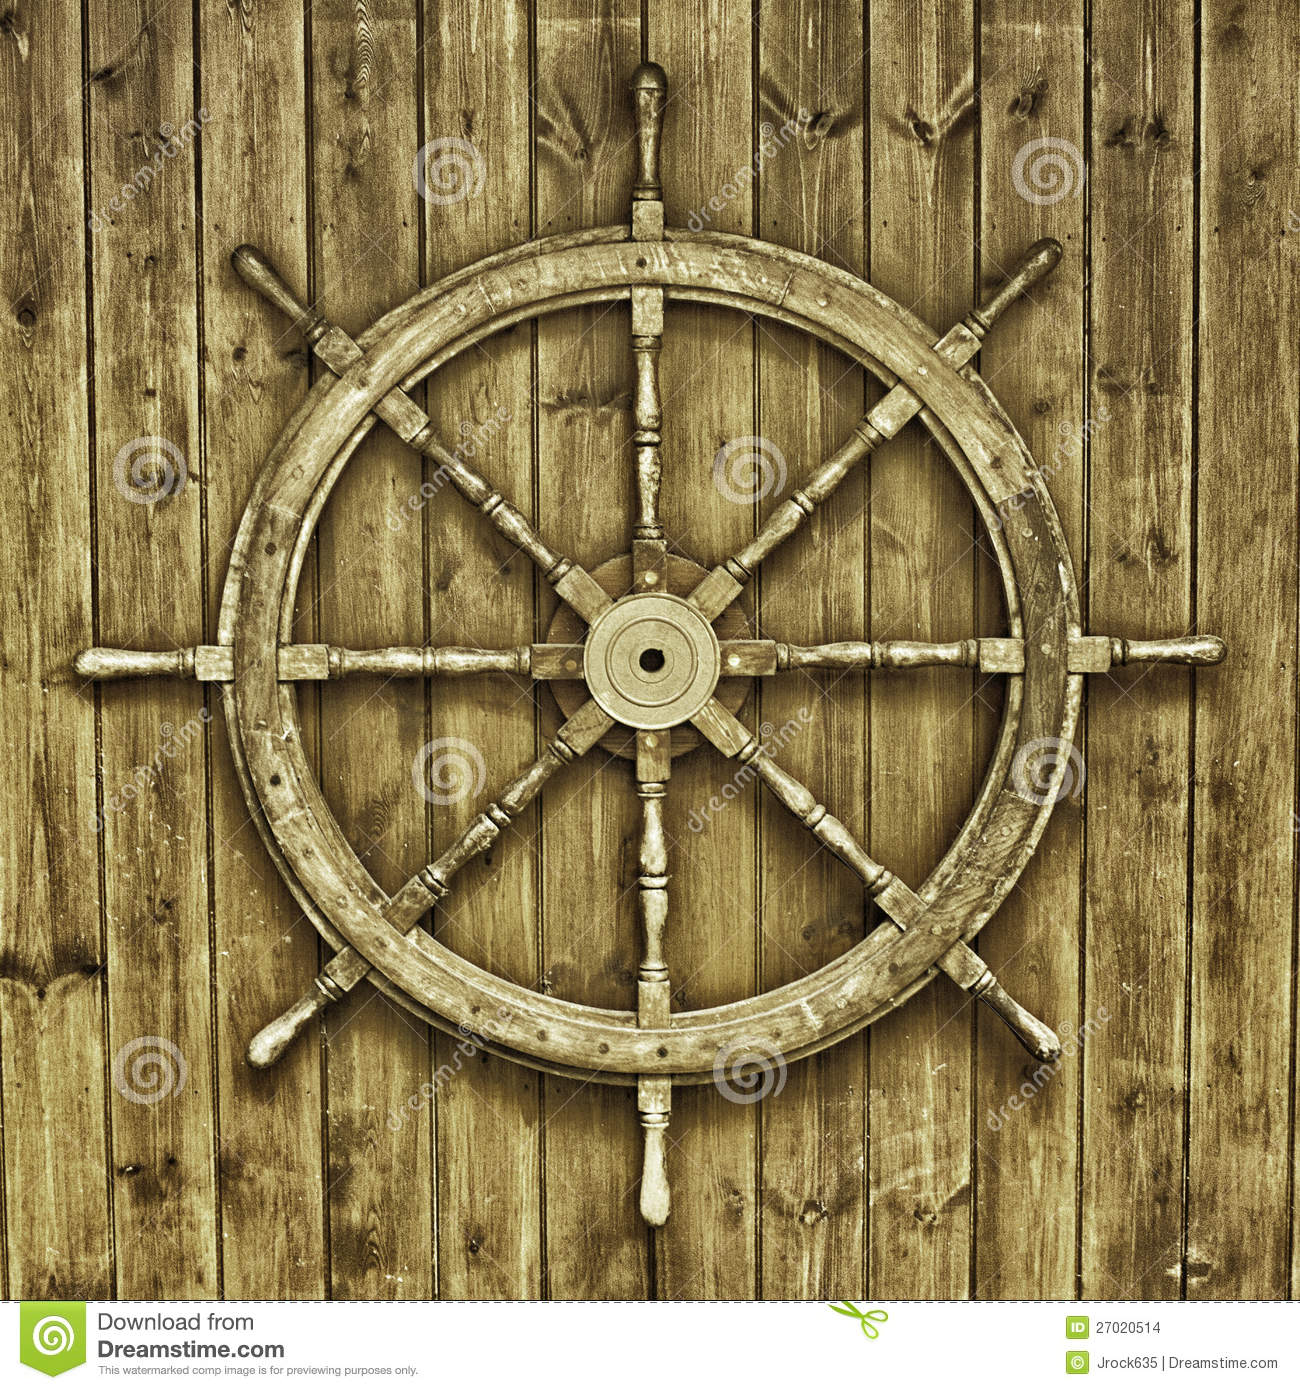 Decorative Wooden Ships Wheel Stock Photo - Image of old, steering: 27020514